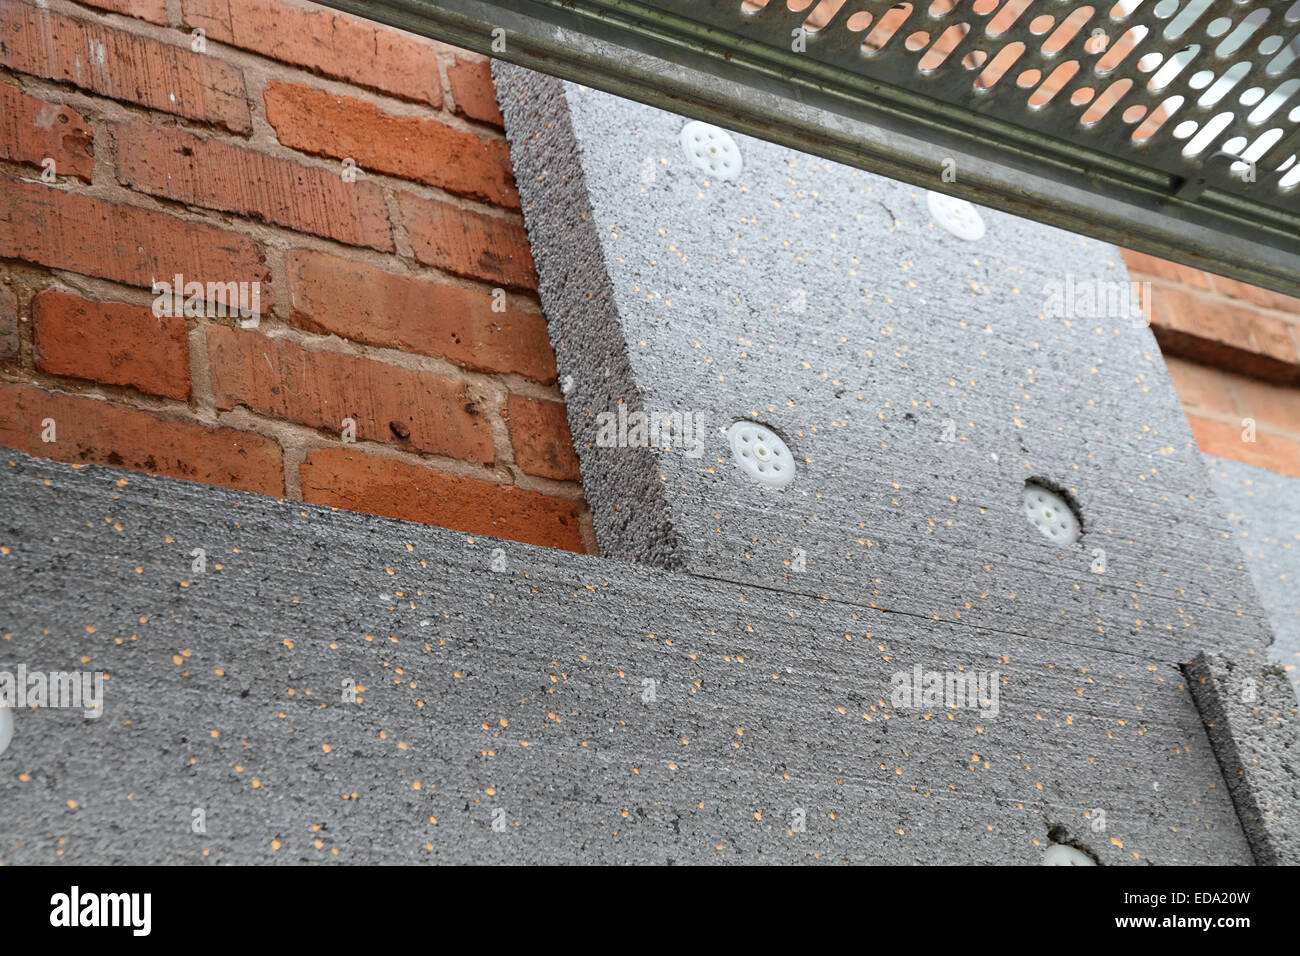 External wall insulation for solid wall houses with no cavity stock photo 77053113 alamy for Insulating exterior walls in old homes